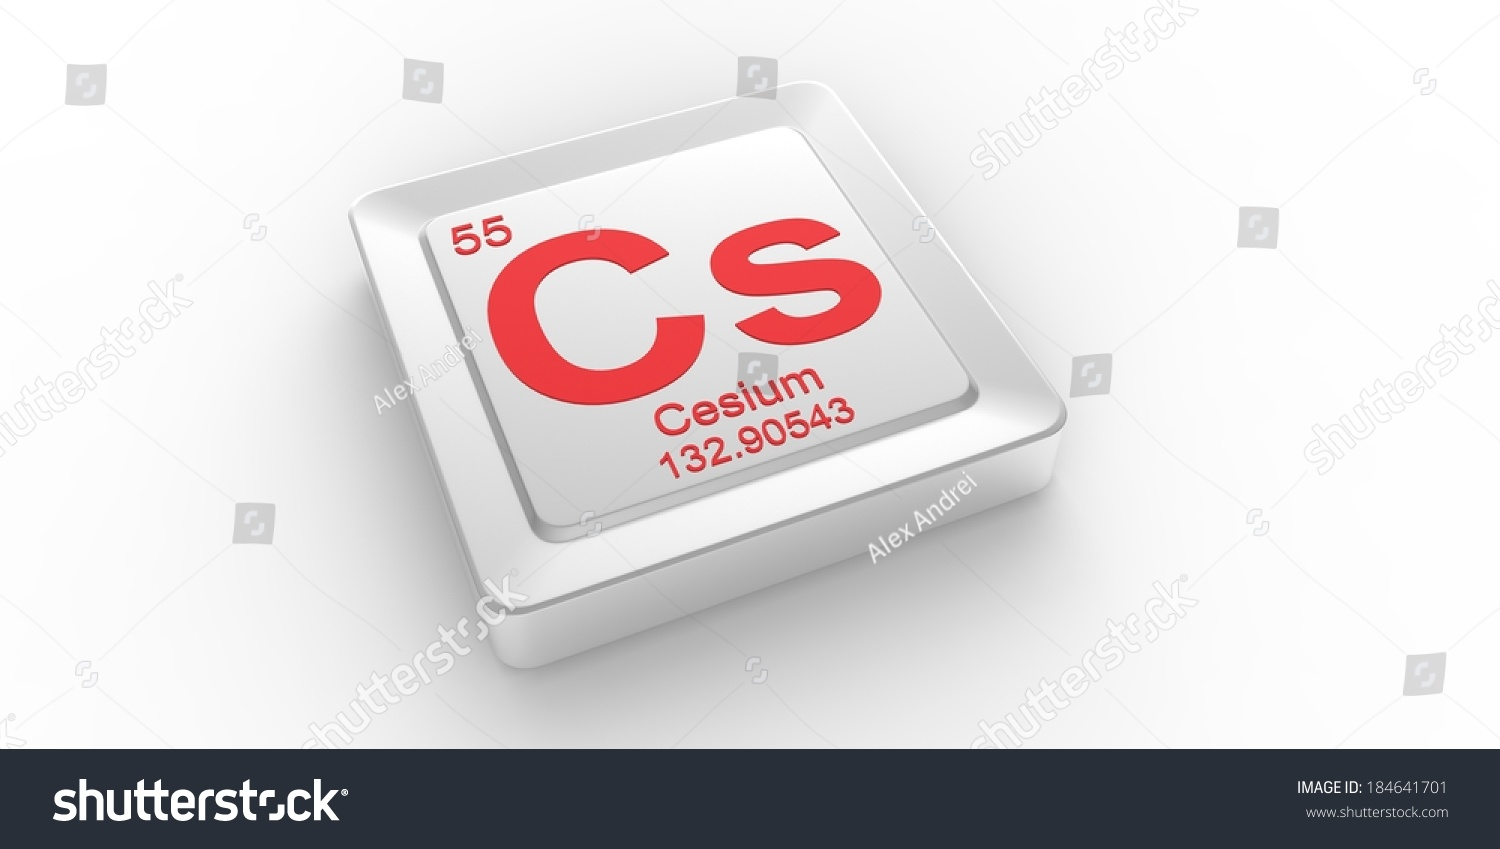 Cesium symbol periodic table image collections periodic table images cesium periodic table choice image periodic table images element 55 periodic table choice image periodic table gamestrikefo Image collections